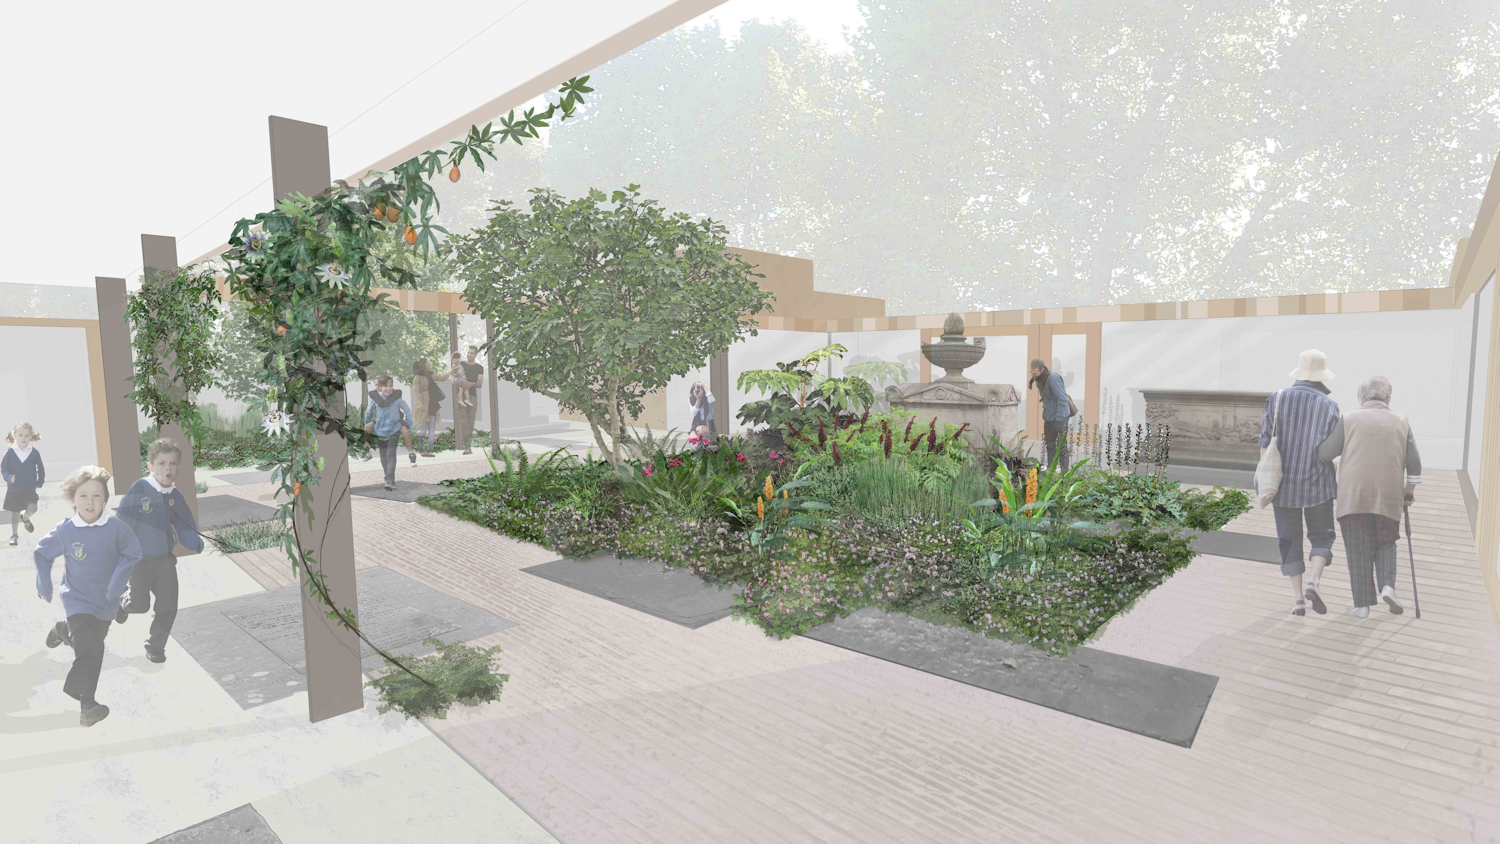 Artist impression of the Dan Pearson designed garden - sadly this won't be completed by the time of the AGM